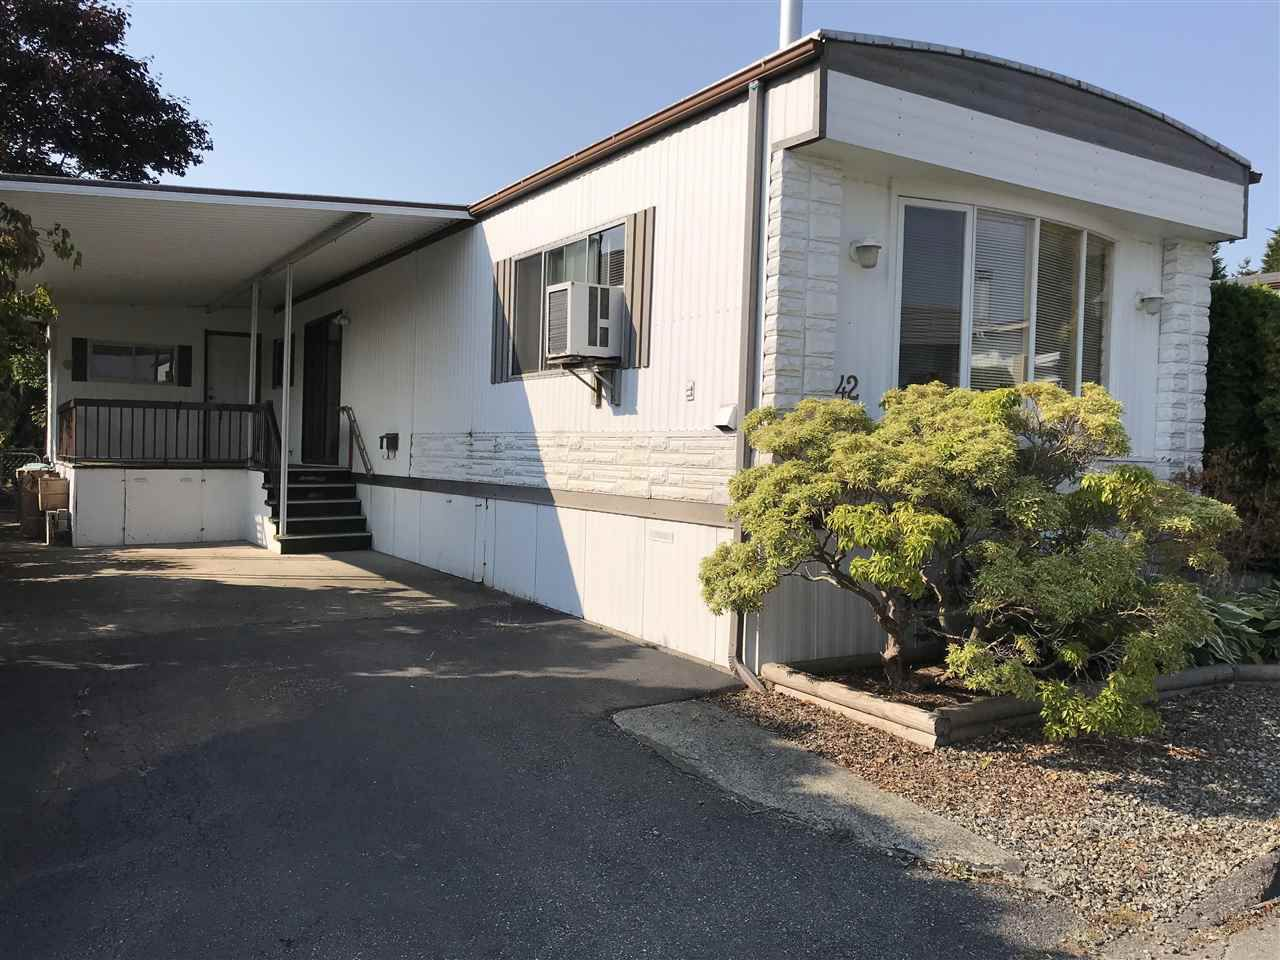 "Main Photo: 42 15875 20 Avenue in Surrey: King George Corridor Manufactured Home for sale in ""SEA RIDGE"" (South Surrey White Rock)  : MLS®# R2300530"